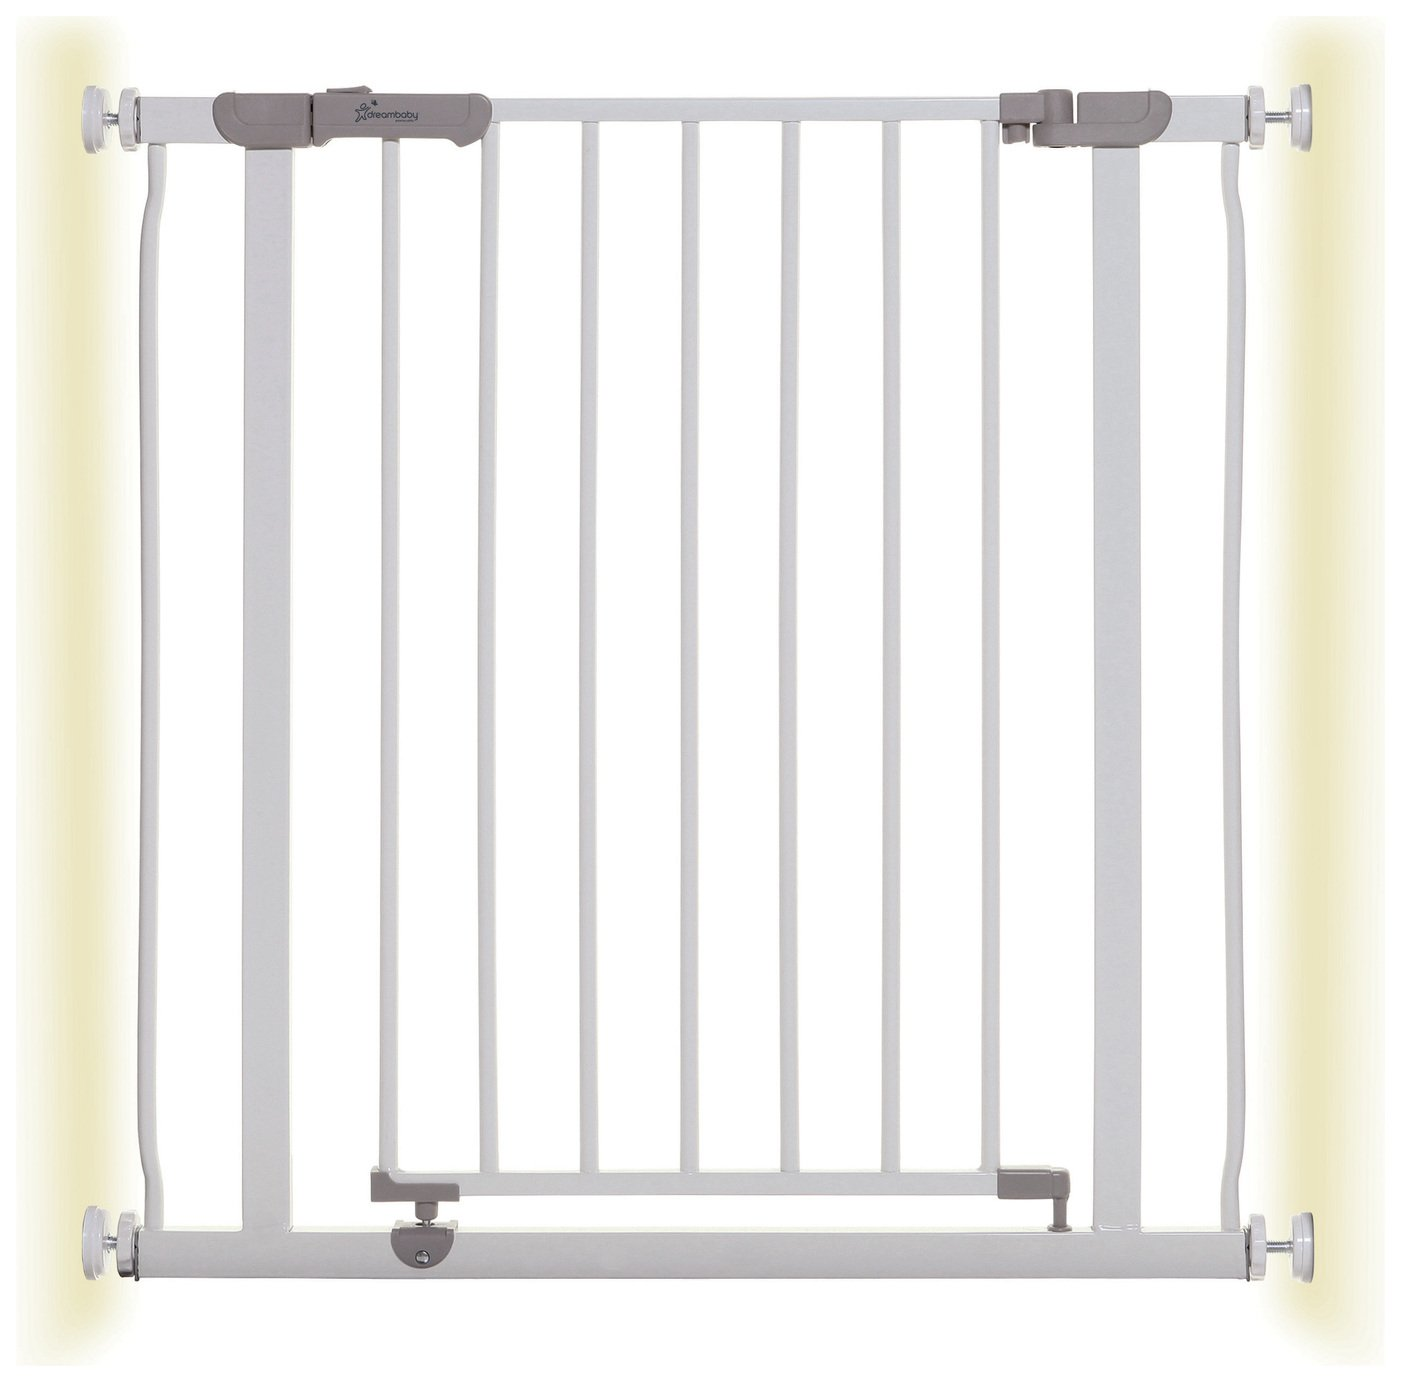 Dreambaby Ava Pressure Fit Safety Gate – White (75-82cm)